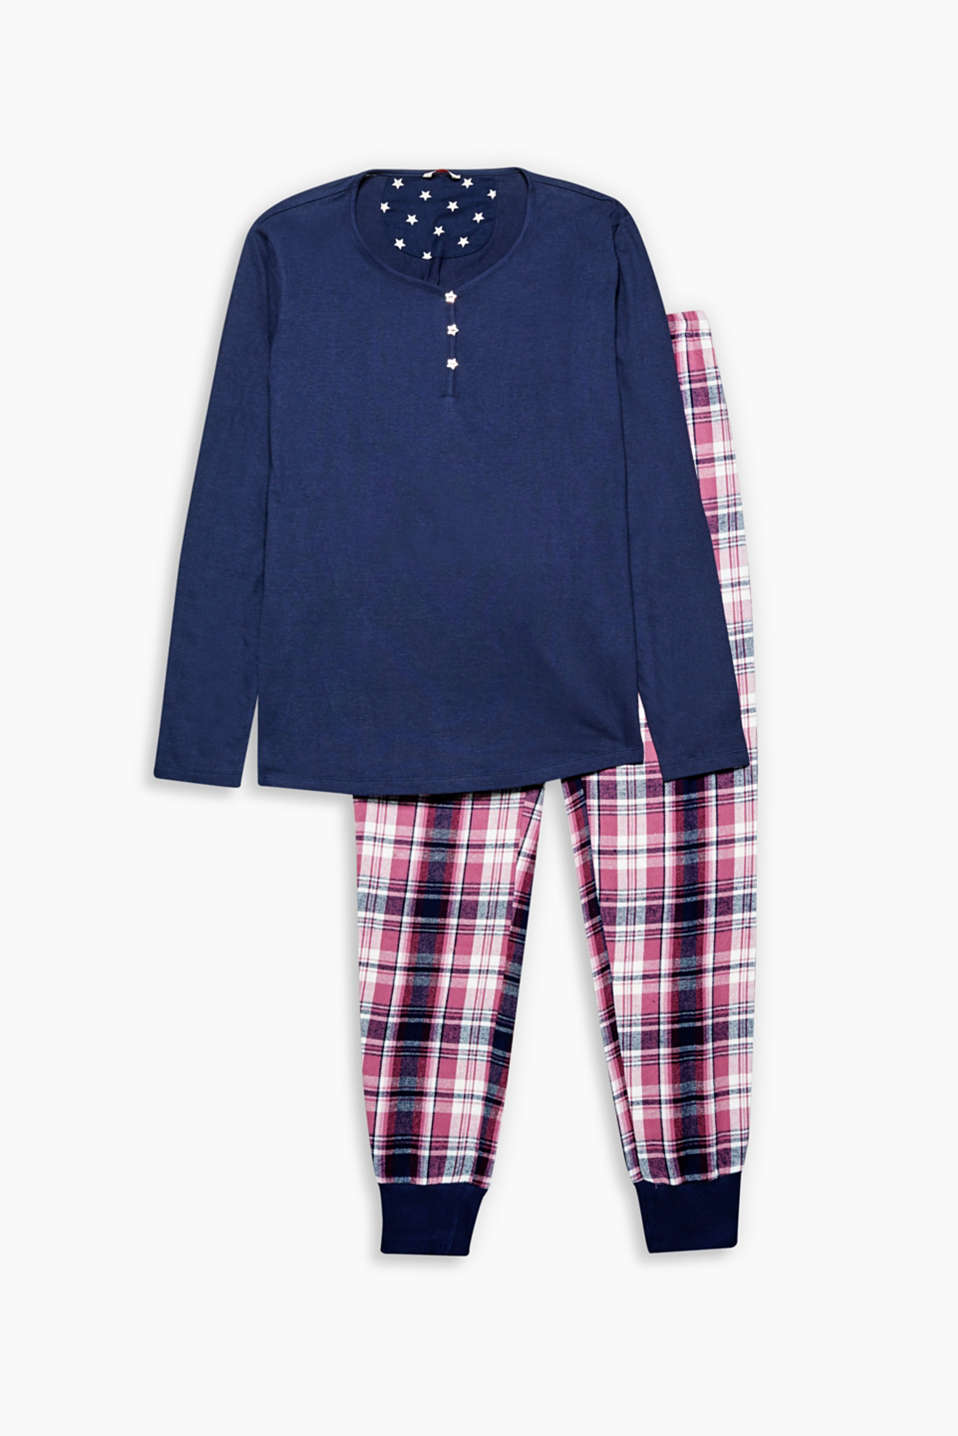 Pyjama set made of jersey and checked flannel decorated with star-shaped mother-of-pearl buttons.